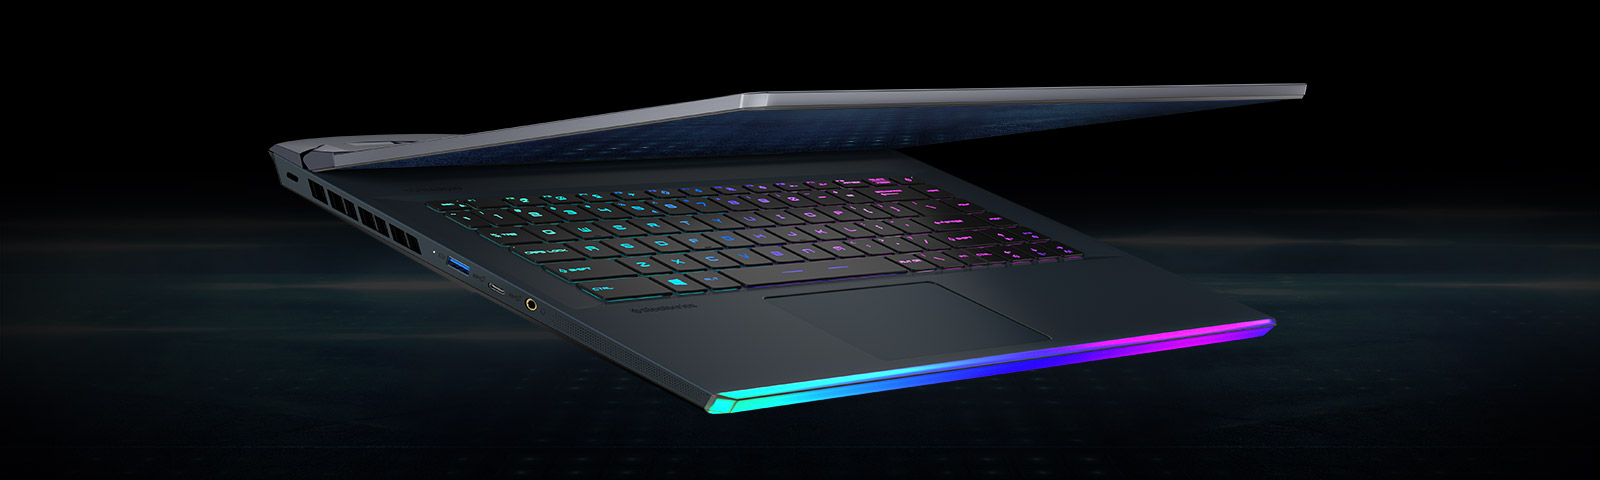 The angle to show RGB backlit keyboard